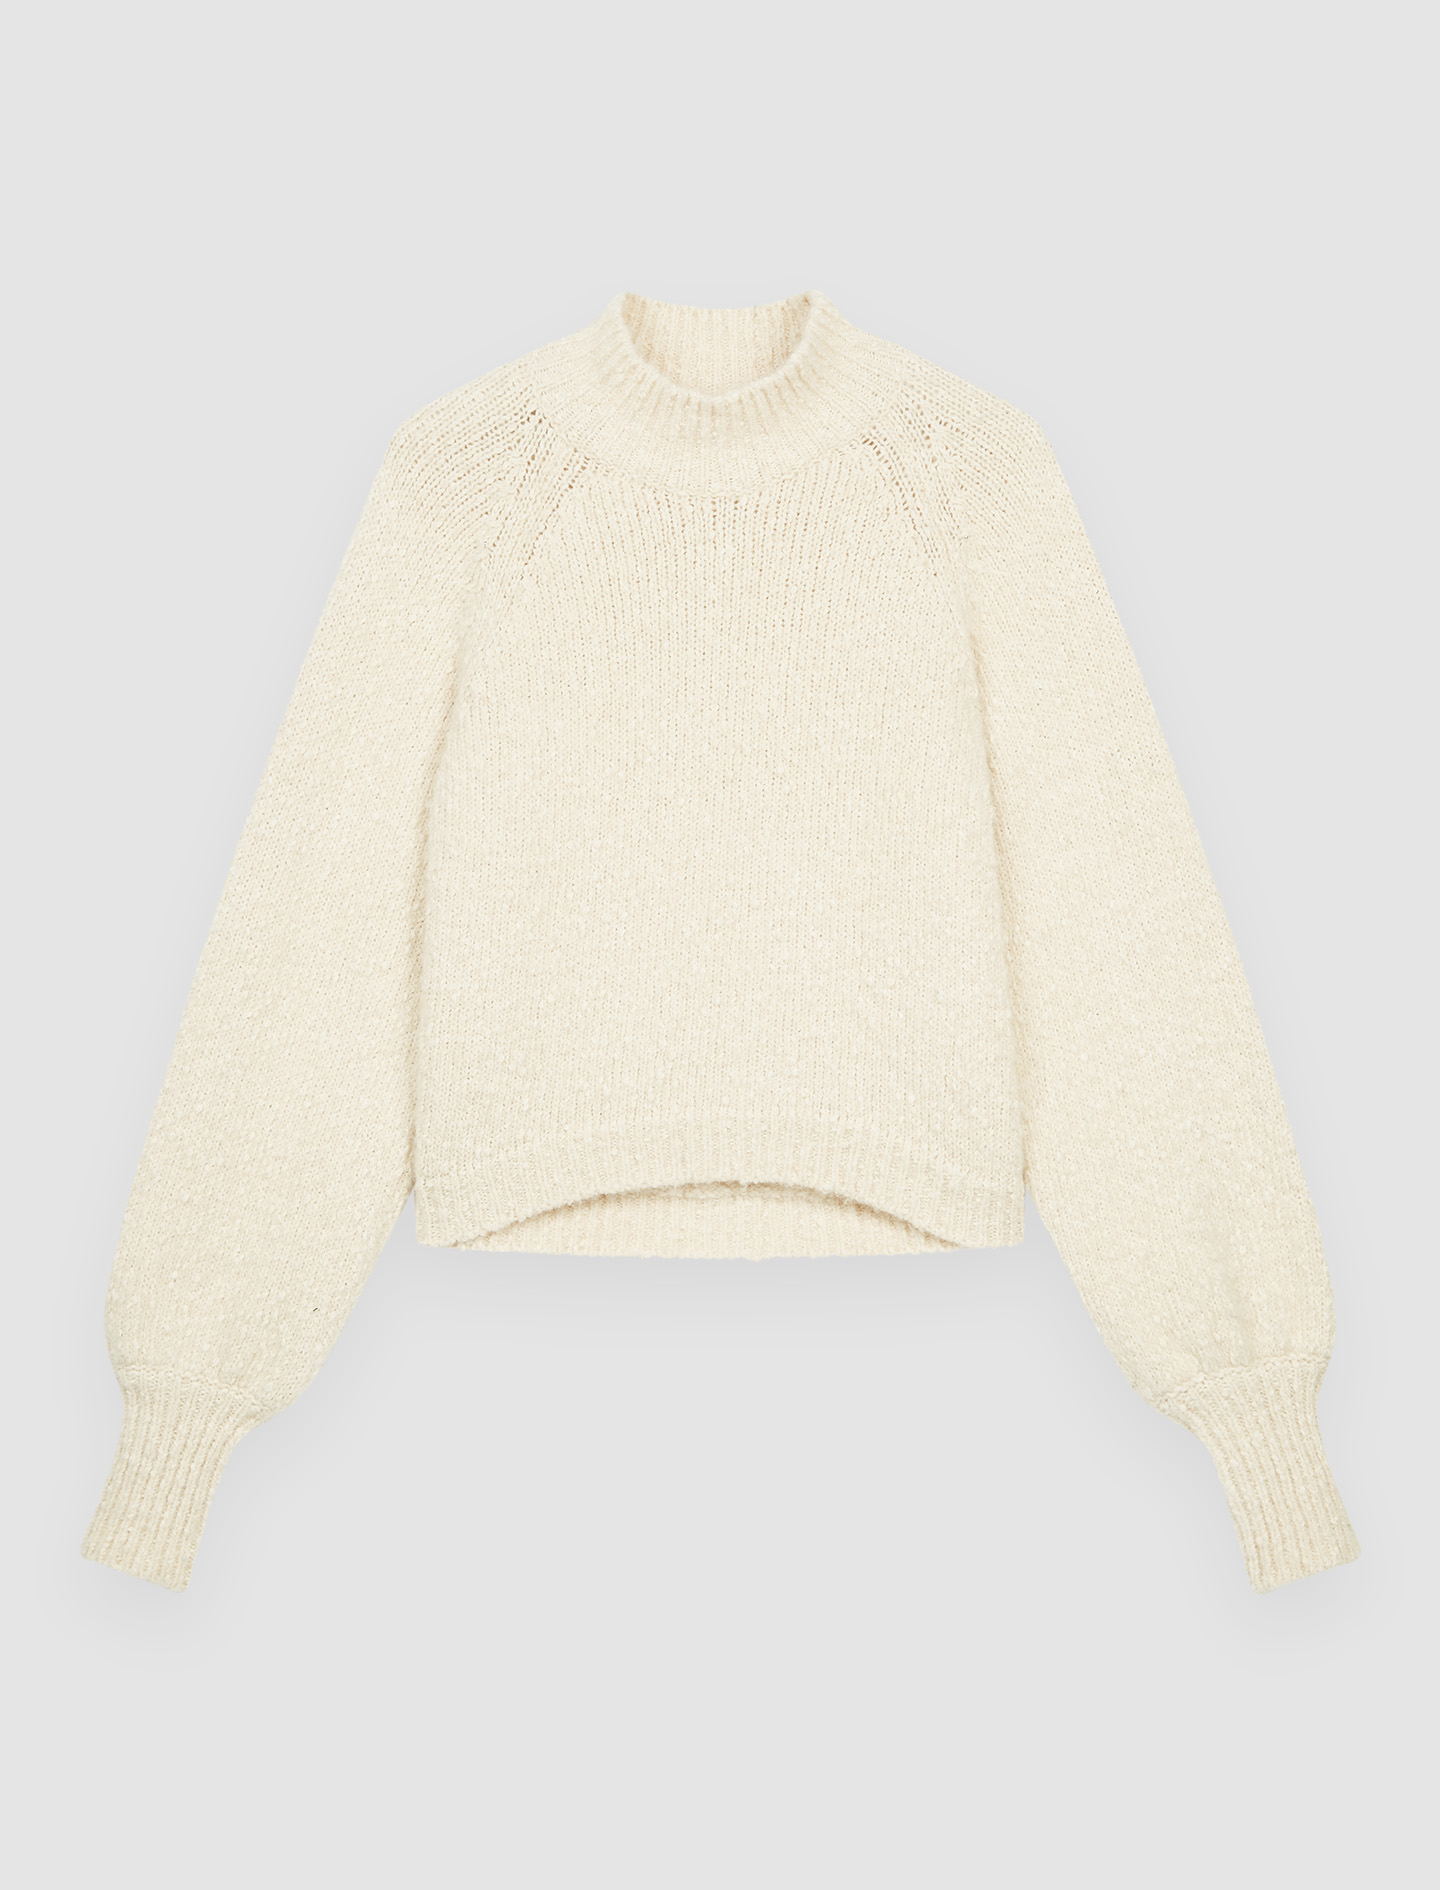 Decorative Knit Pullover With Collar - White